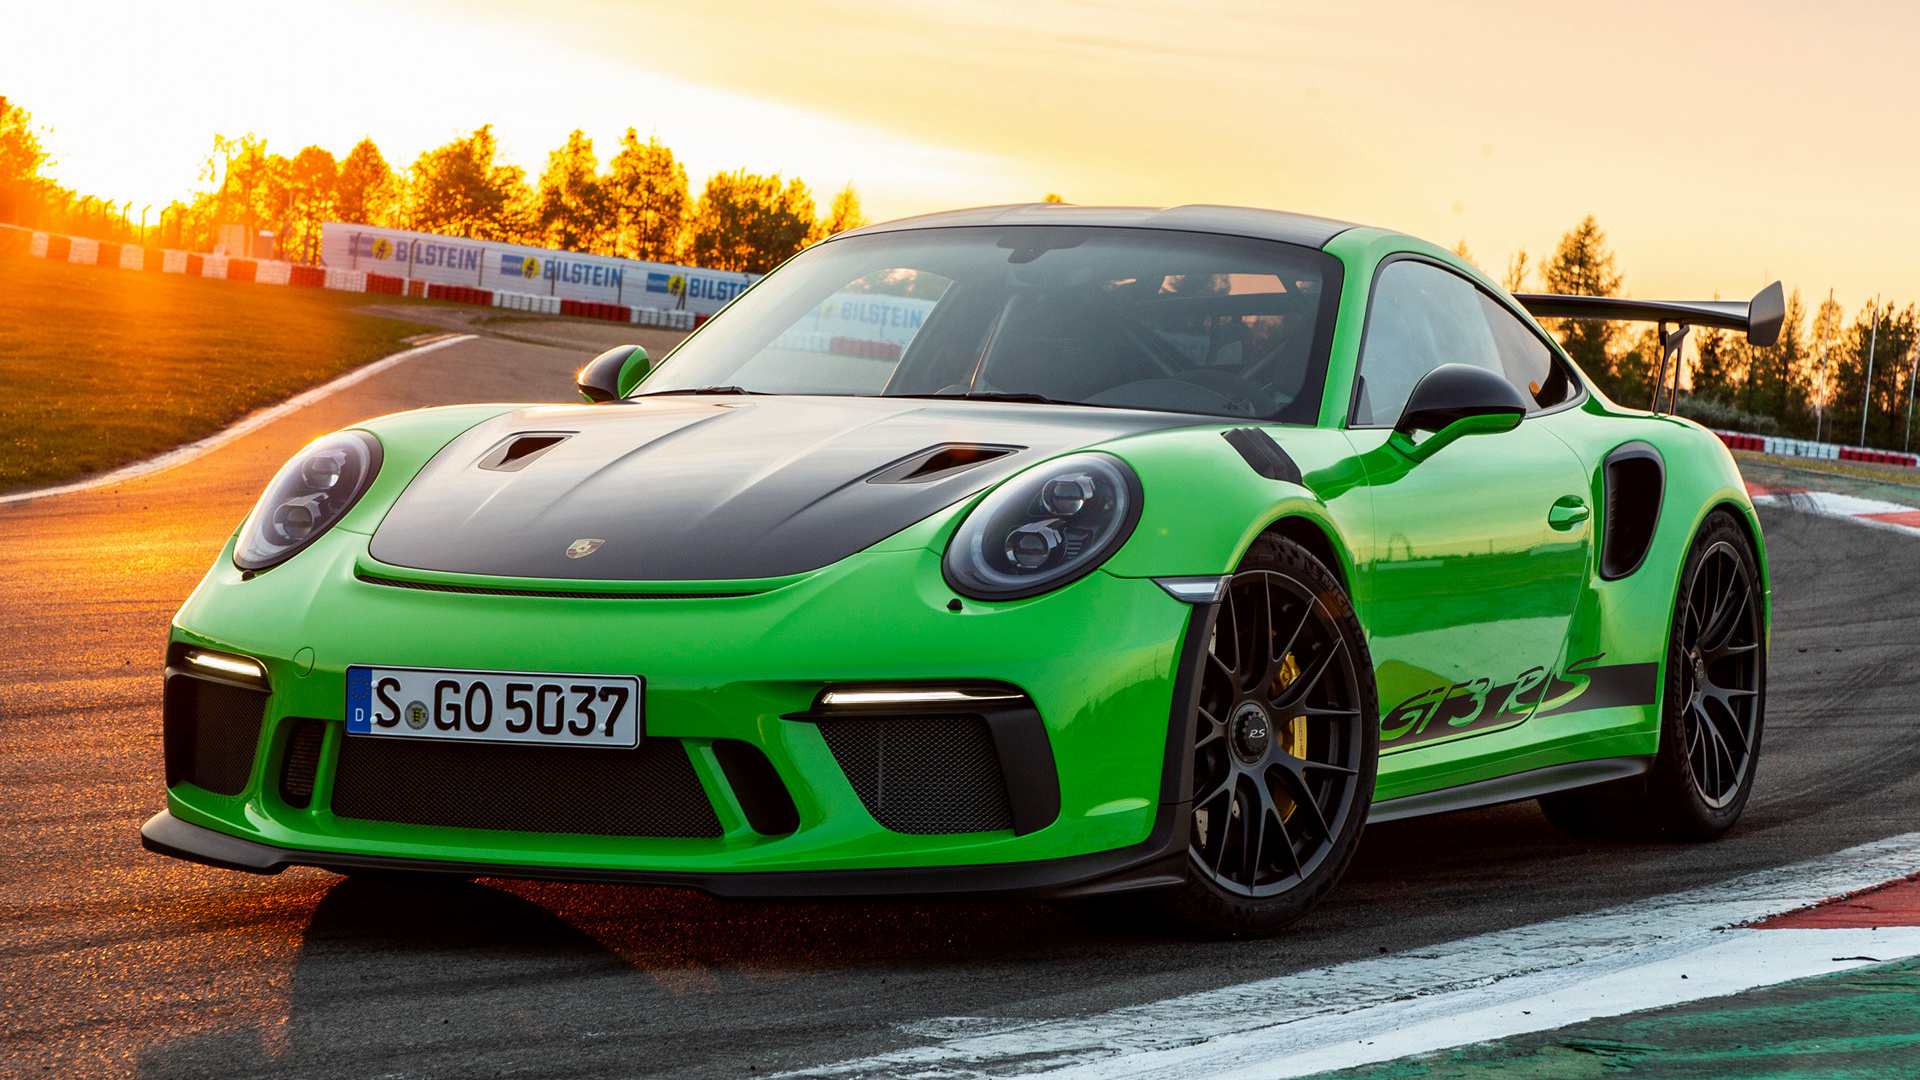 2018 Porsche 911 GT3 RS Weissach Package - Wallpapers and ...